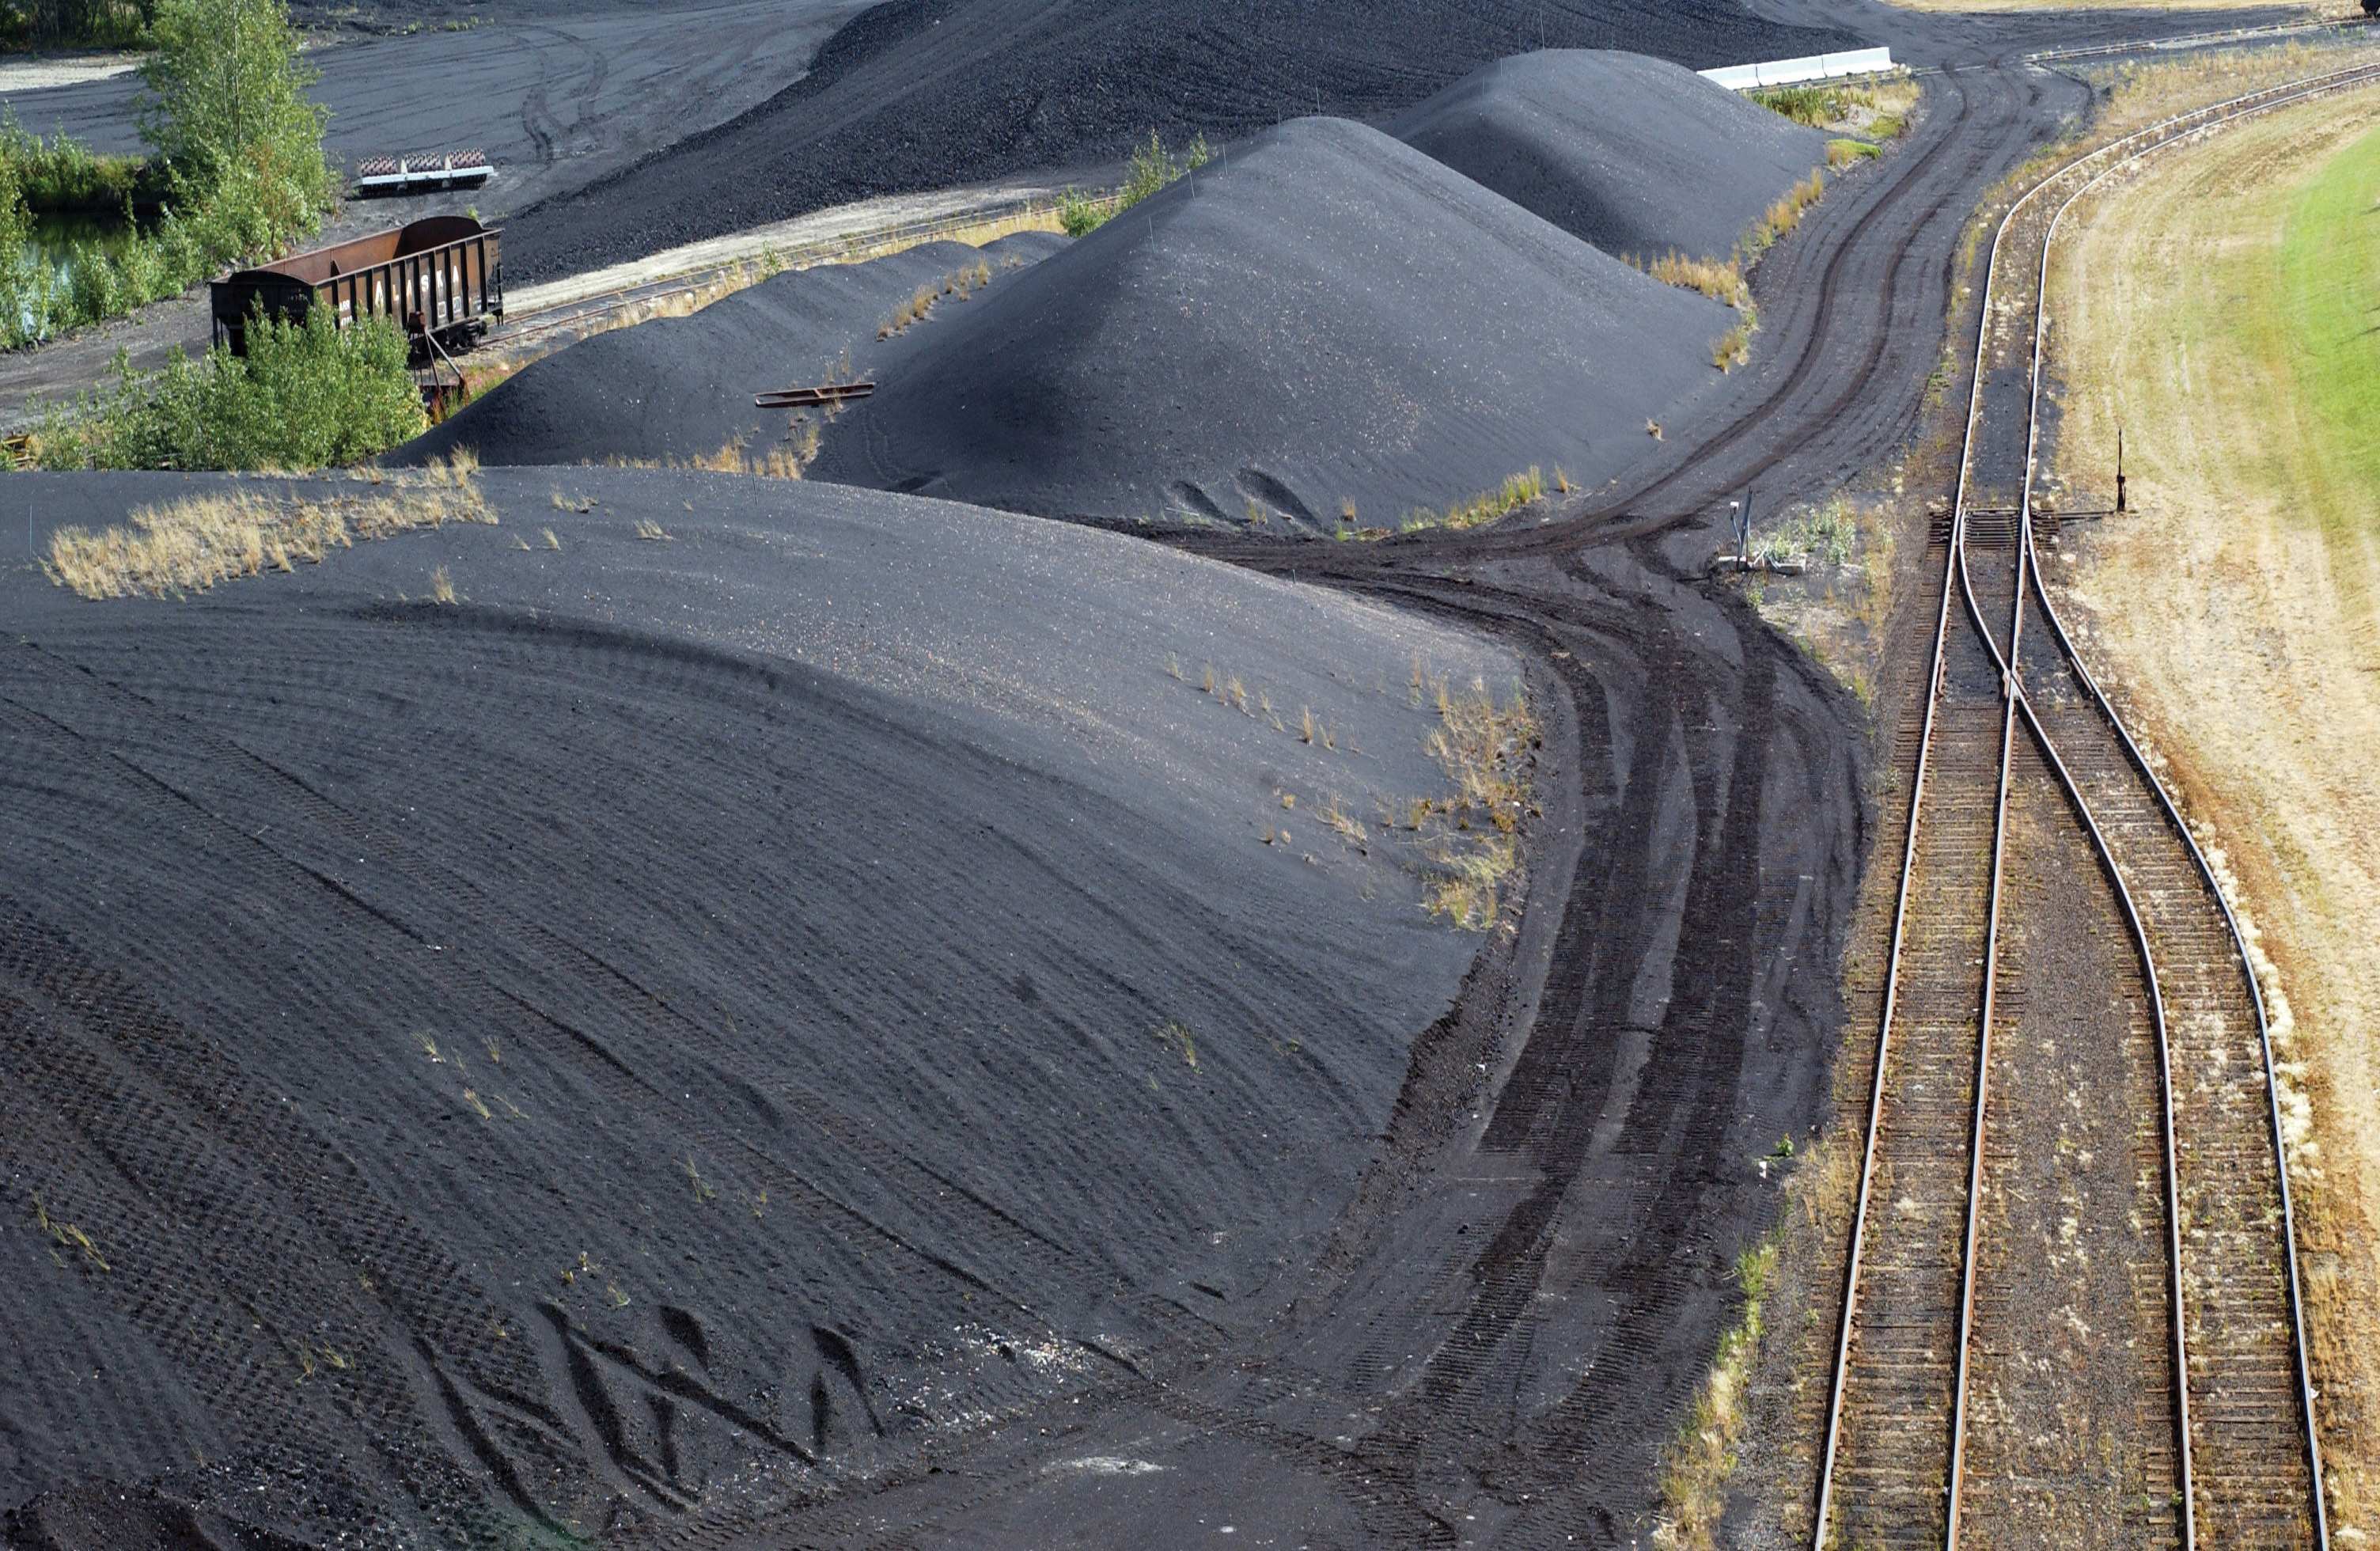 A coal stockpile at Eielson Air Force Base in Alaska